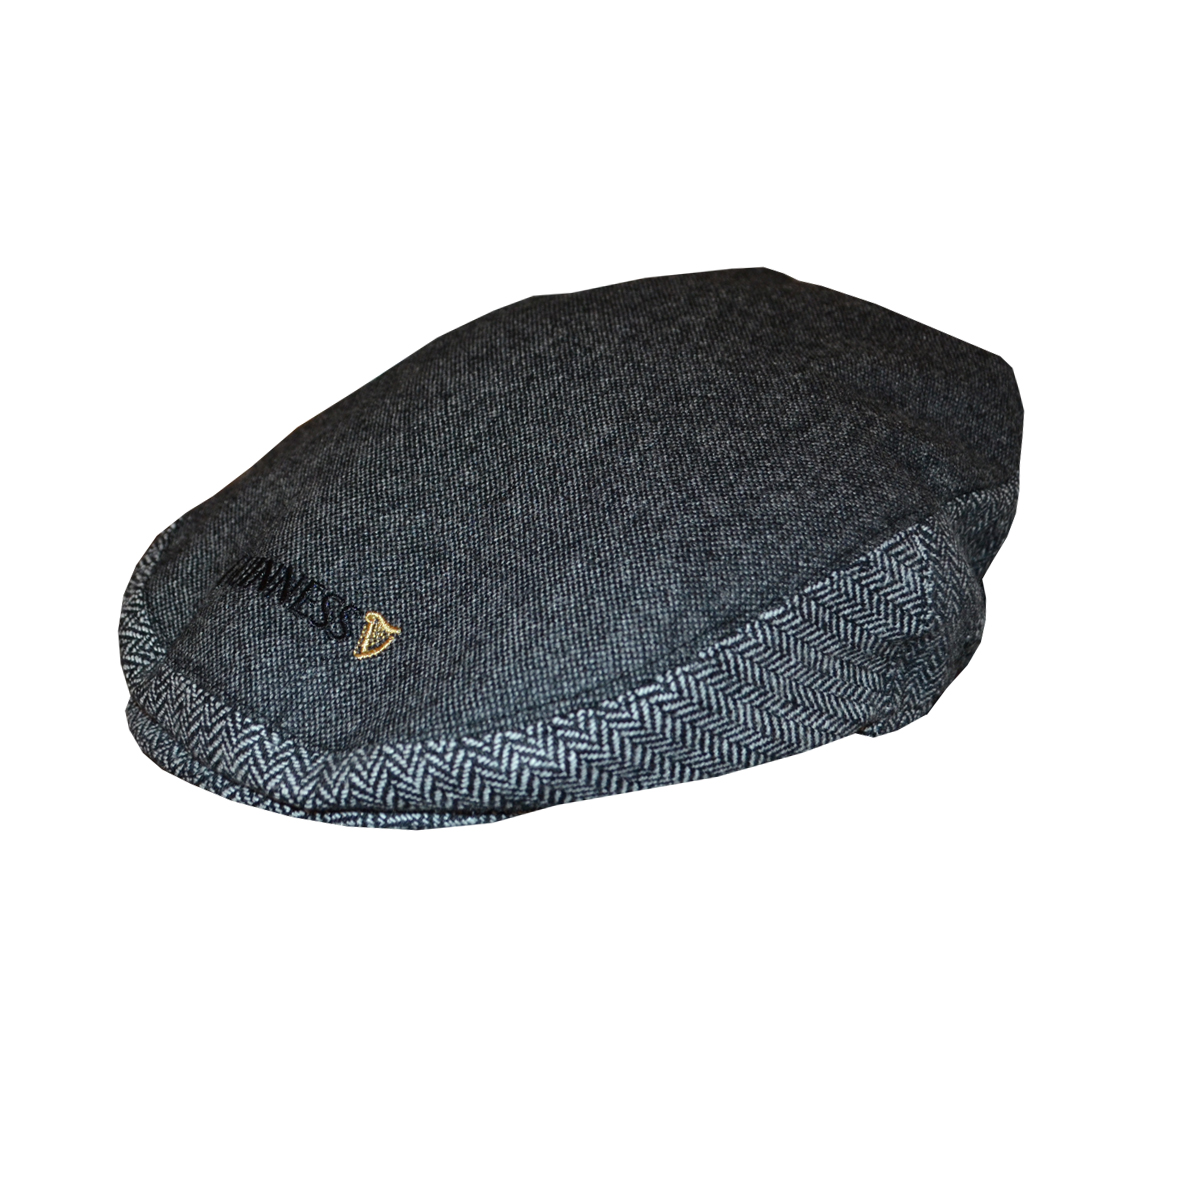 Guinness Grey Tweed Flat Cap (Medium & Large)